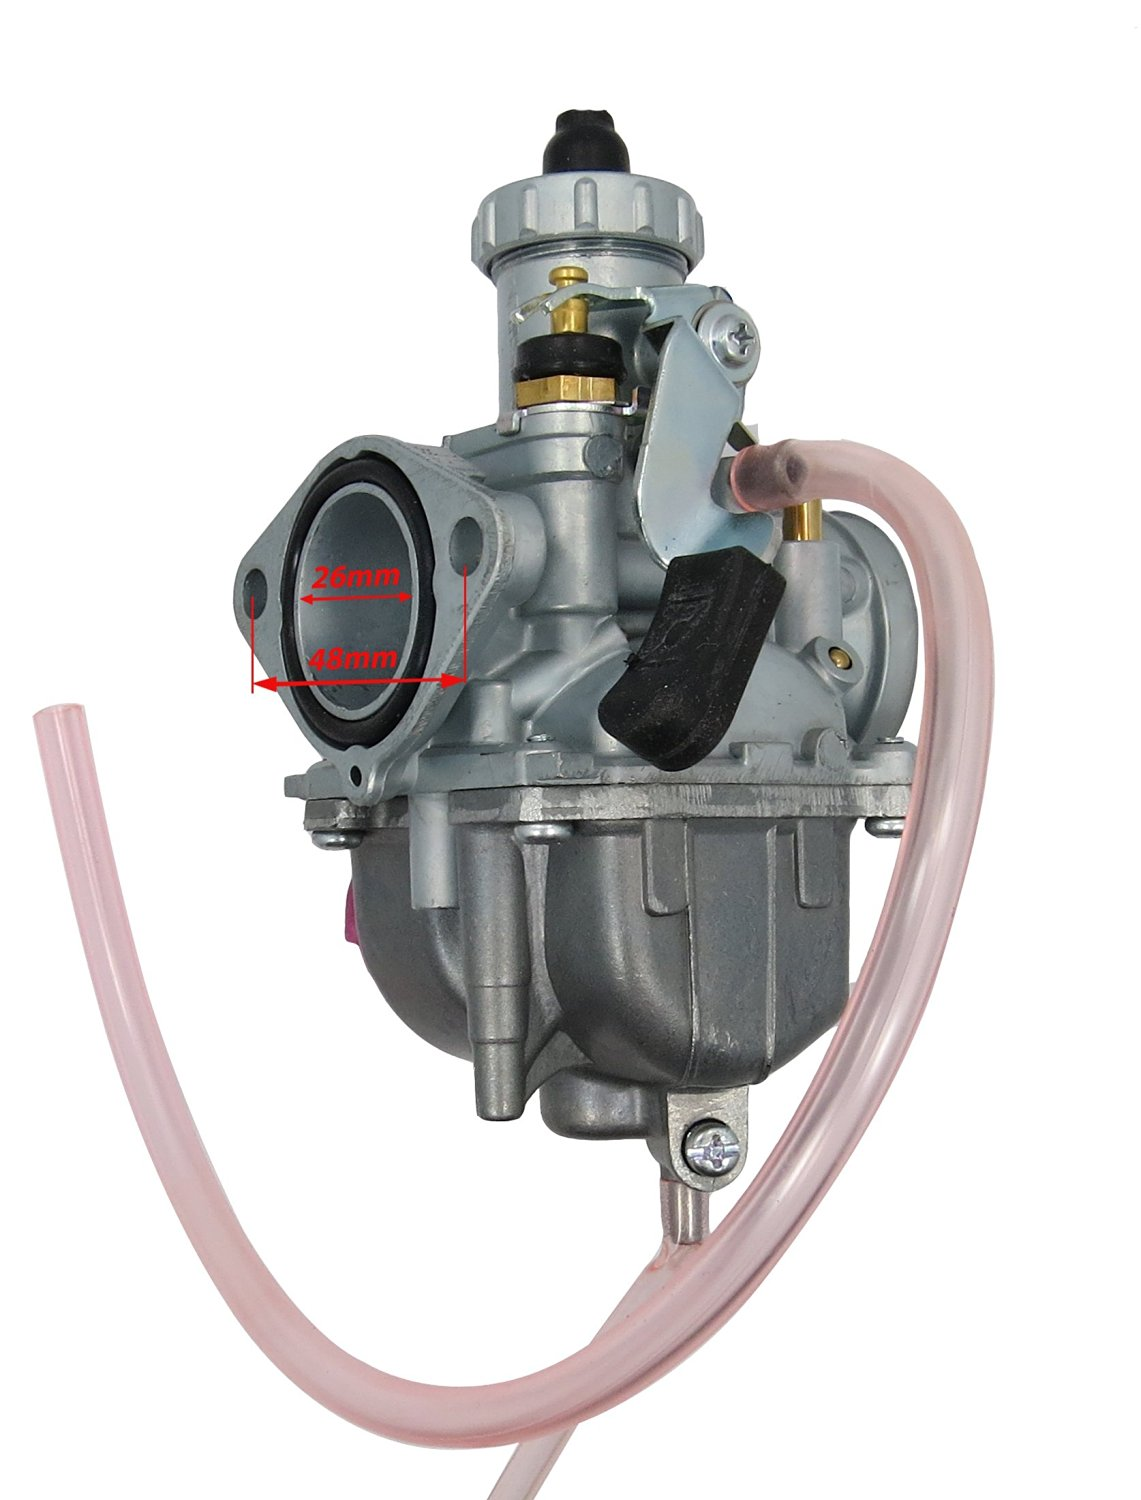 Cheap Mikuni Carb, find Mikuni Carb deals on line at Alibaba com